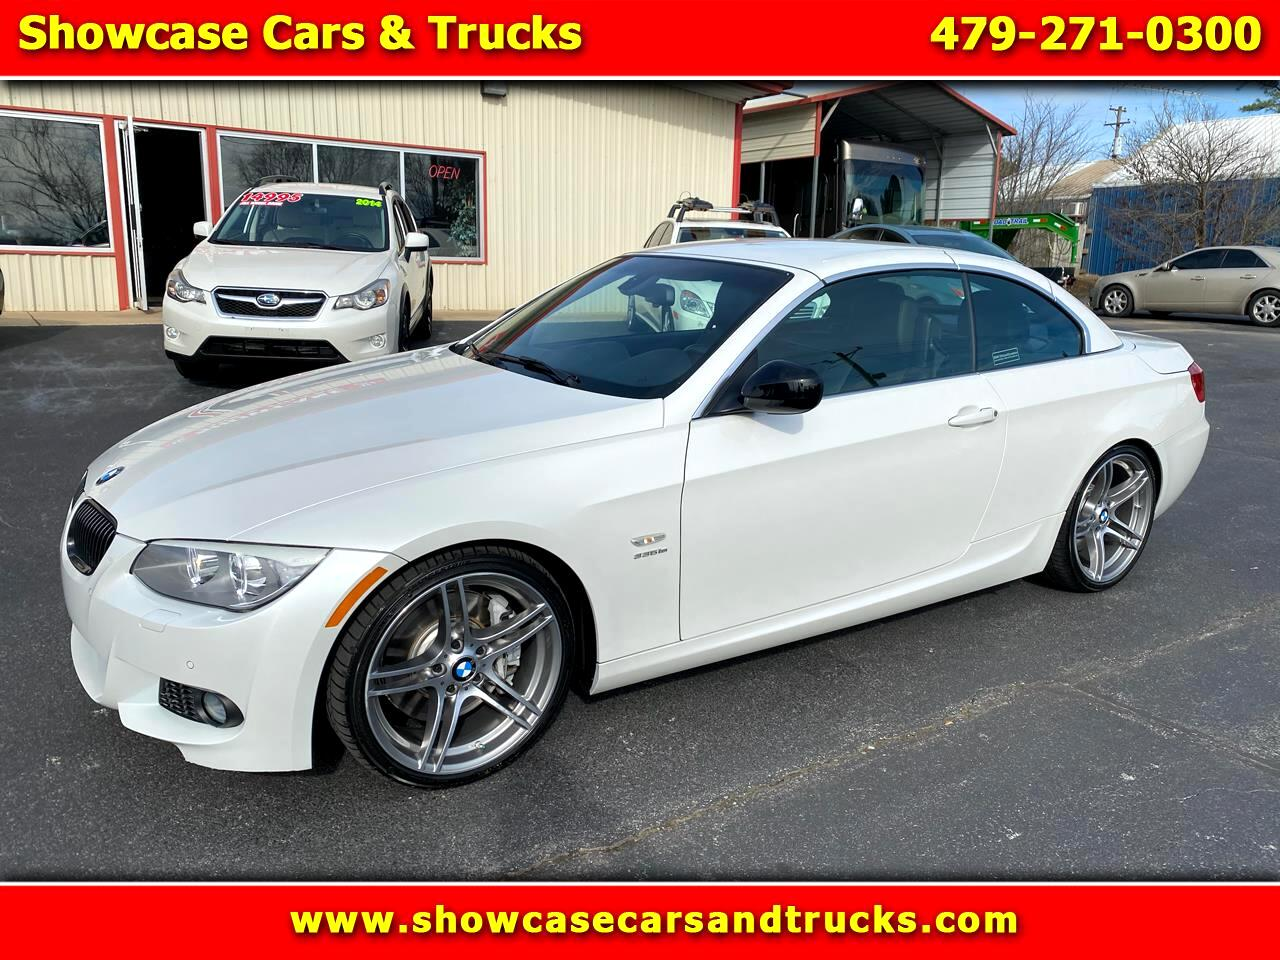 BMW 3-Series 335i Convertible - SULEV 2013